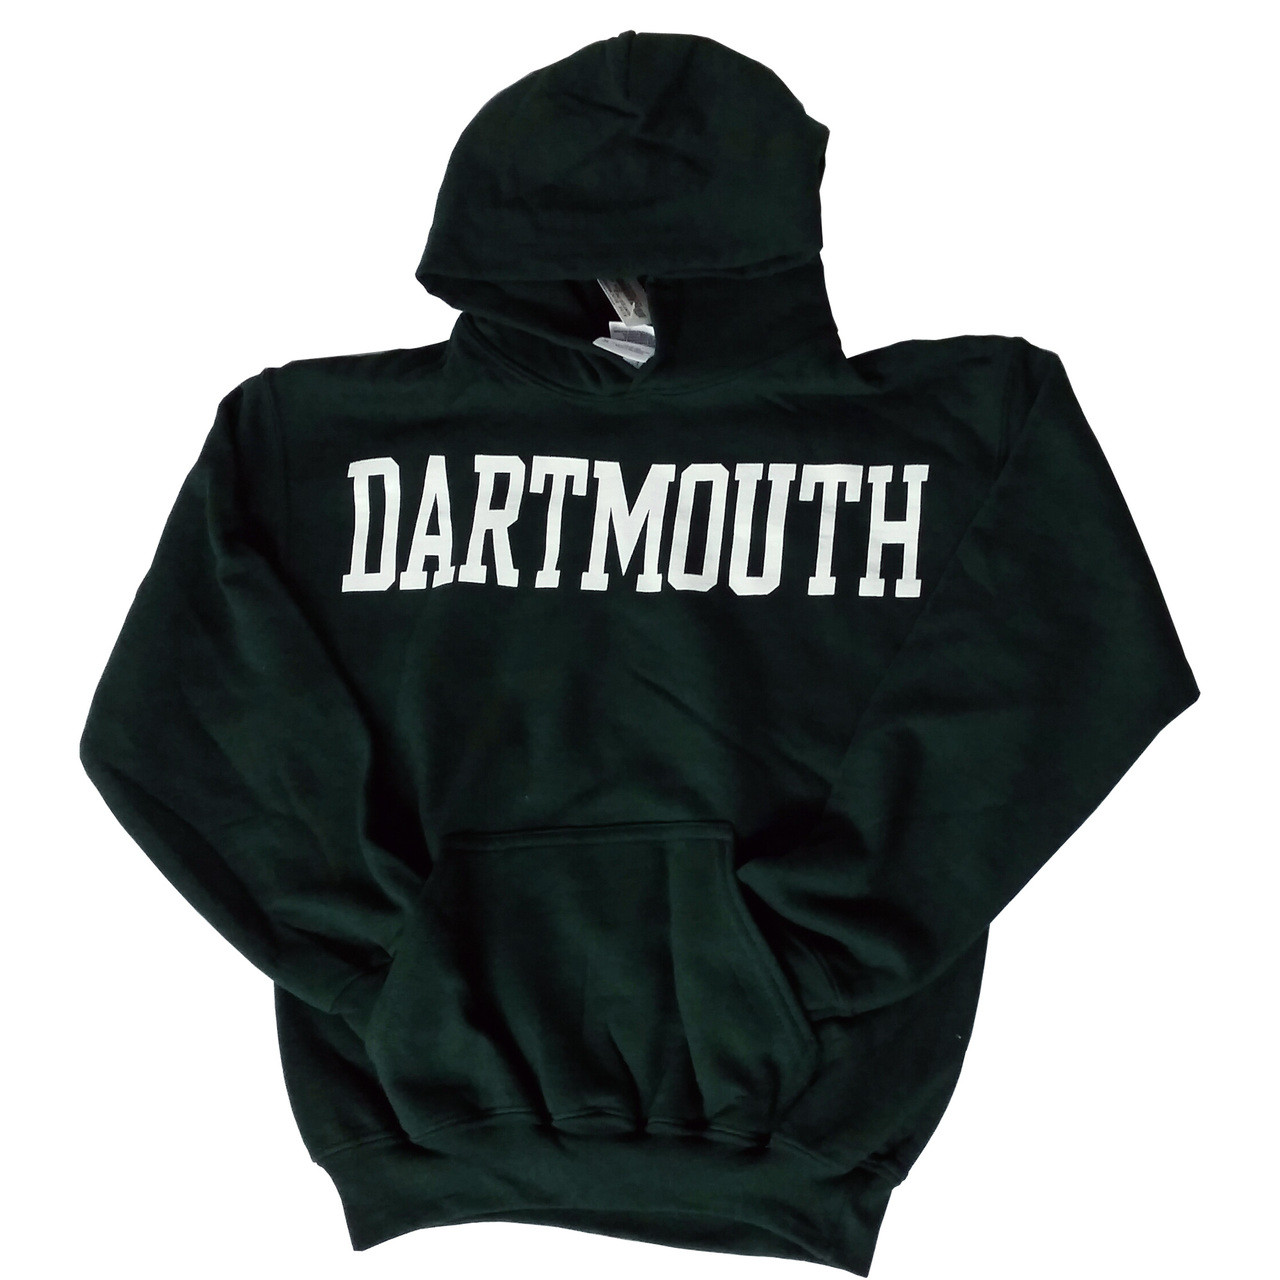 Hooded Youth Dartmouth Sweatshirts Zipper Hoodie Polos Young Grey